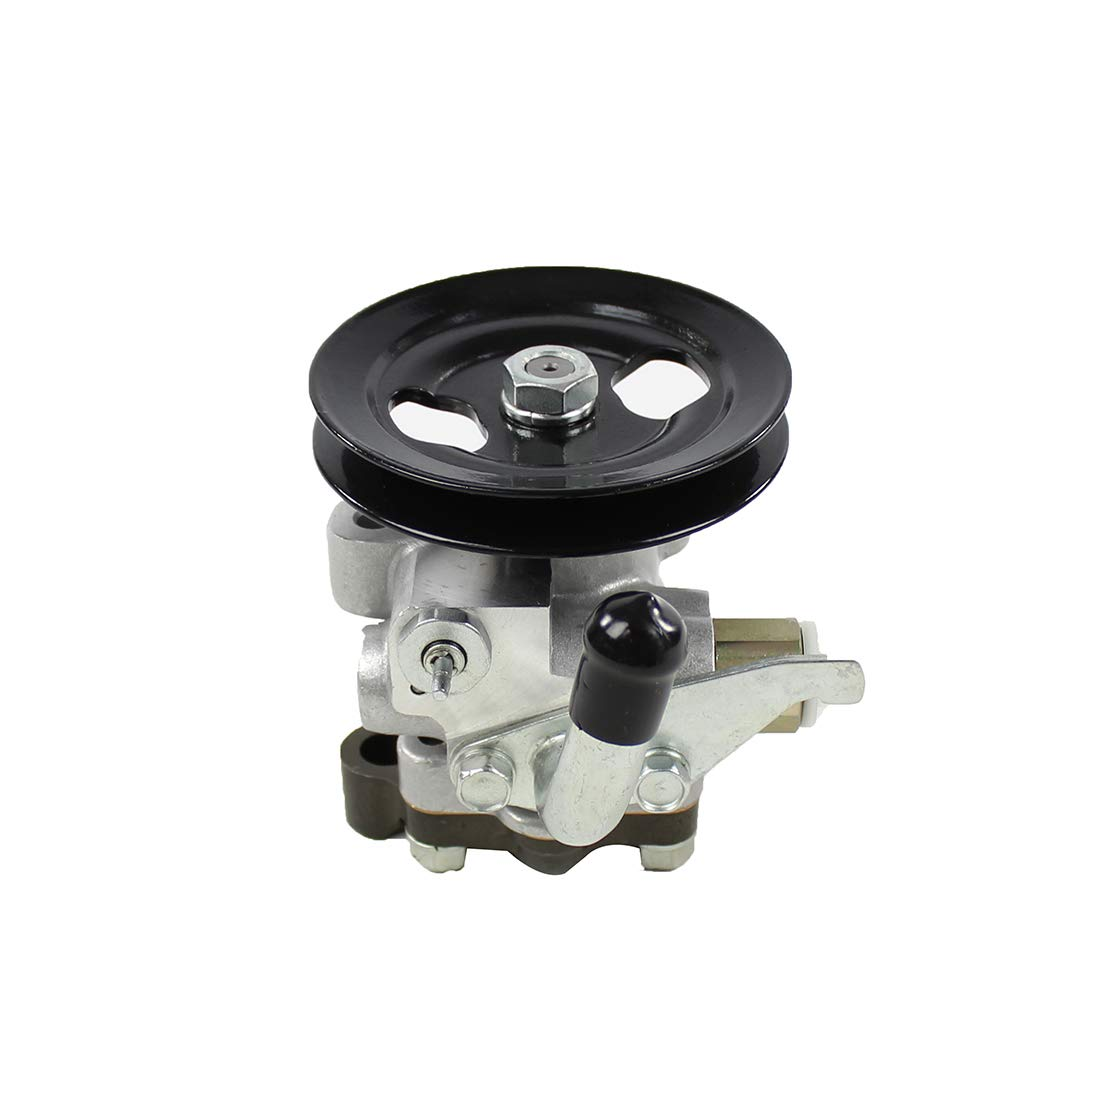 Brand new DNJ Power Steering Pump PSP1313 No Core Needed